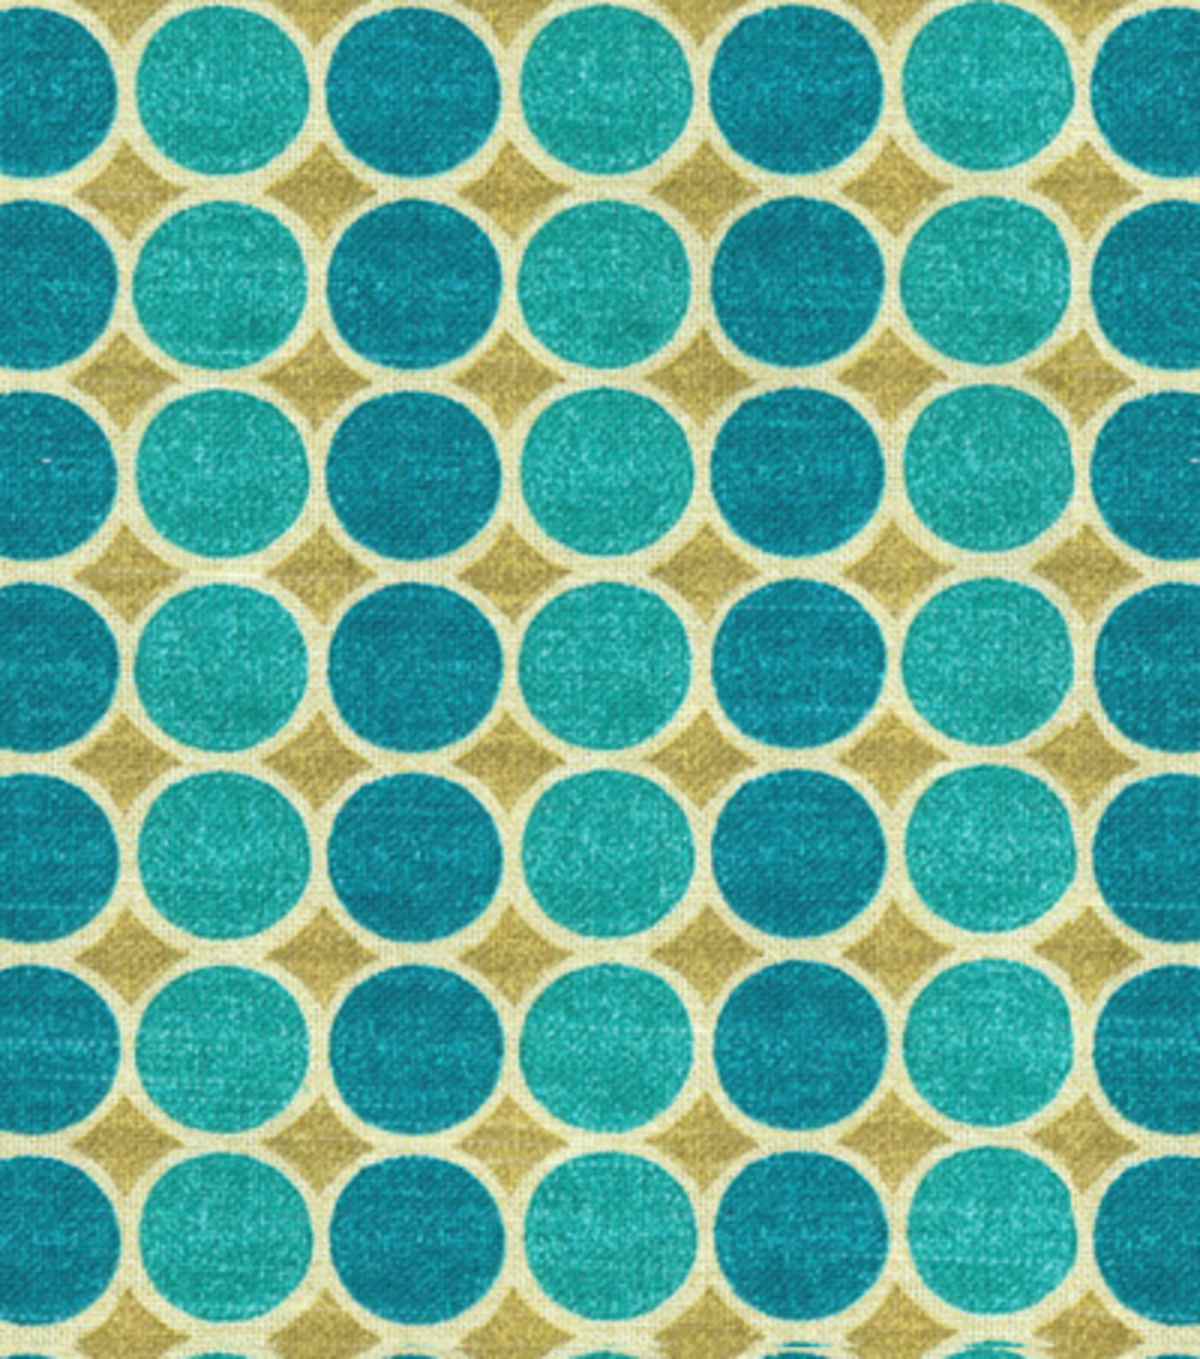 Home Decor 8\u0022x8\u0022 Fabric Swatch-HGTV HOME Round Trip Lagoon